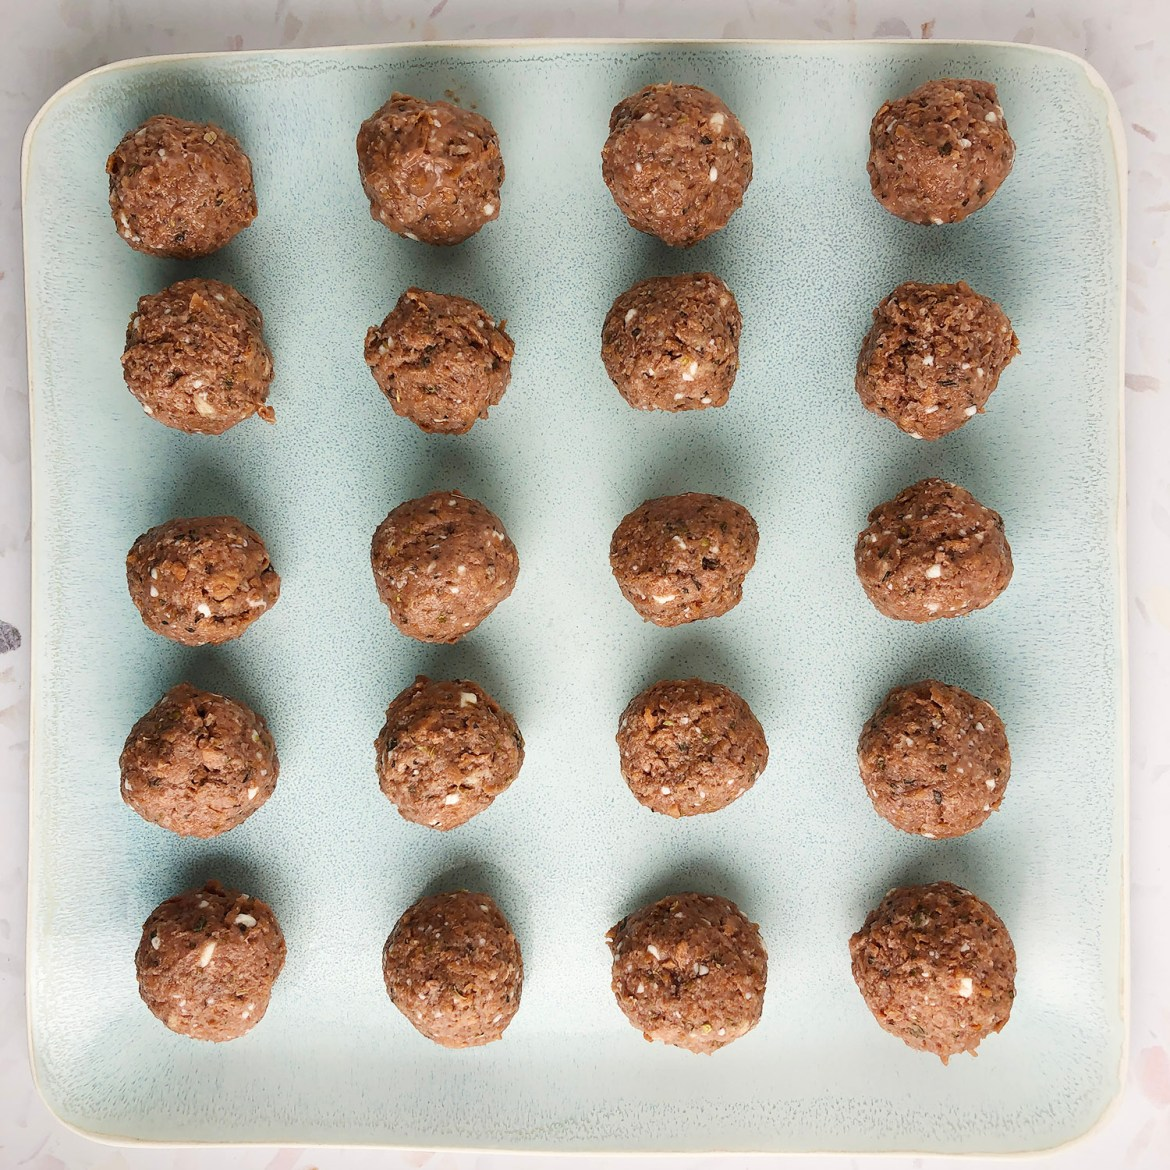 Top-down shot of 20 uncooked mini-meatballs made from Beyond Meat, lined up in rows on a light blue plate.